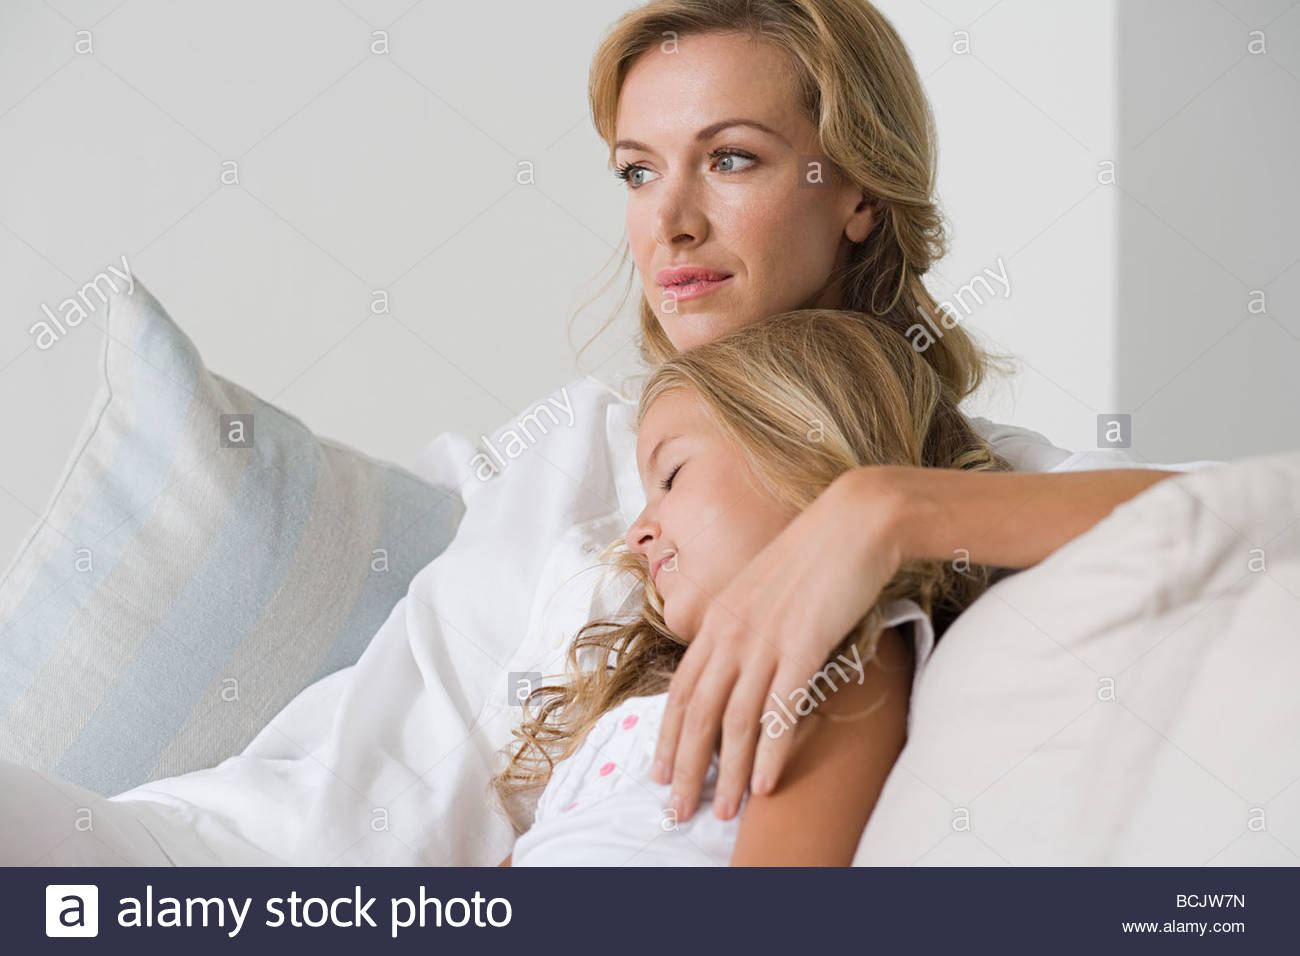 Woman relaxing on couch with arm around young daughter Stock Photo